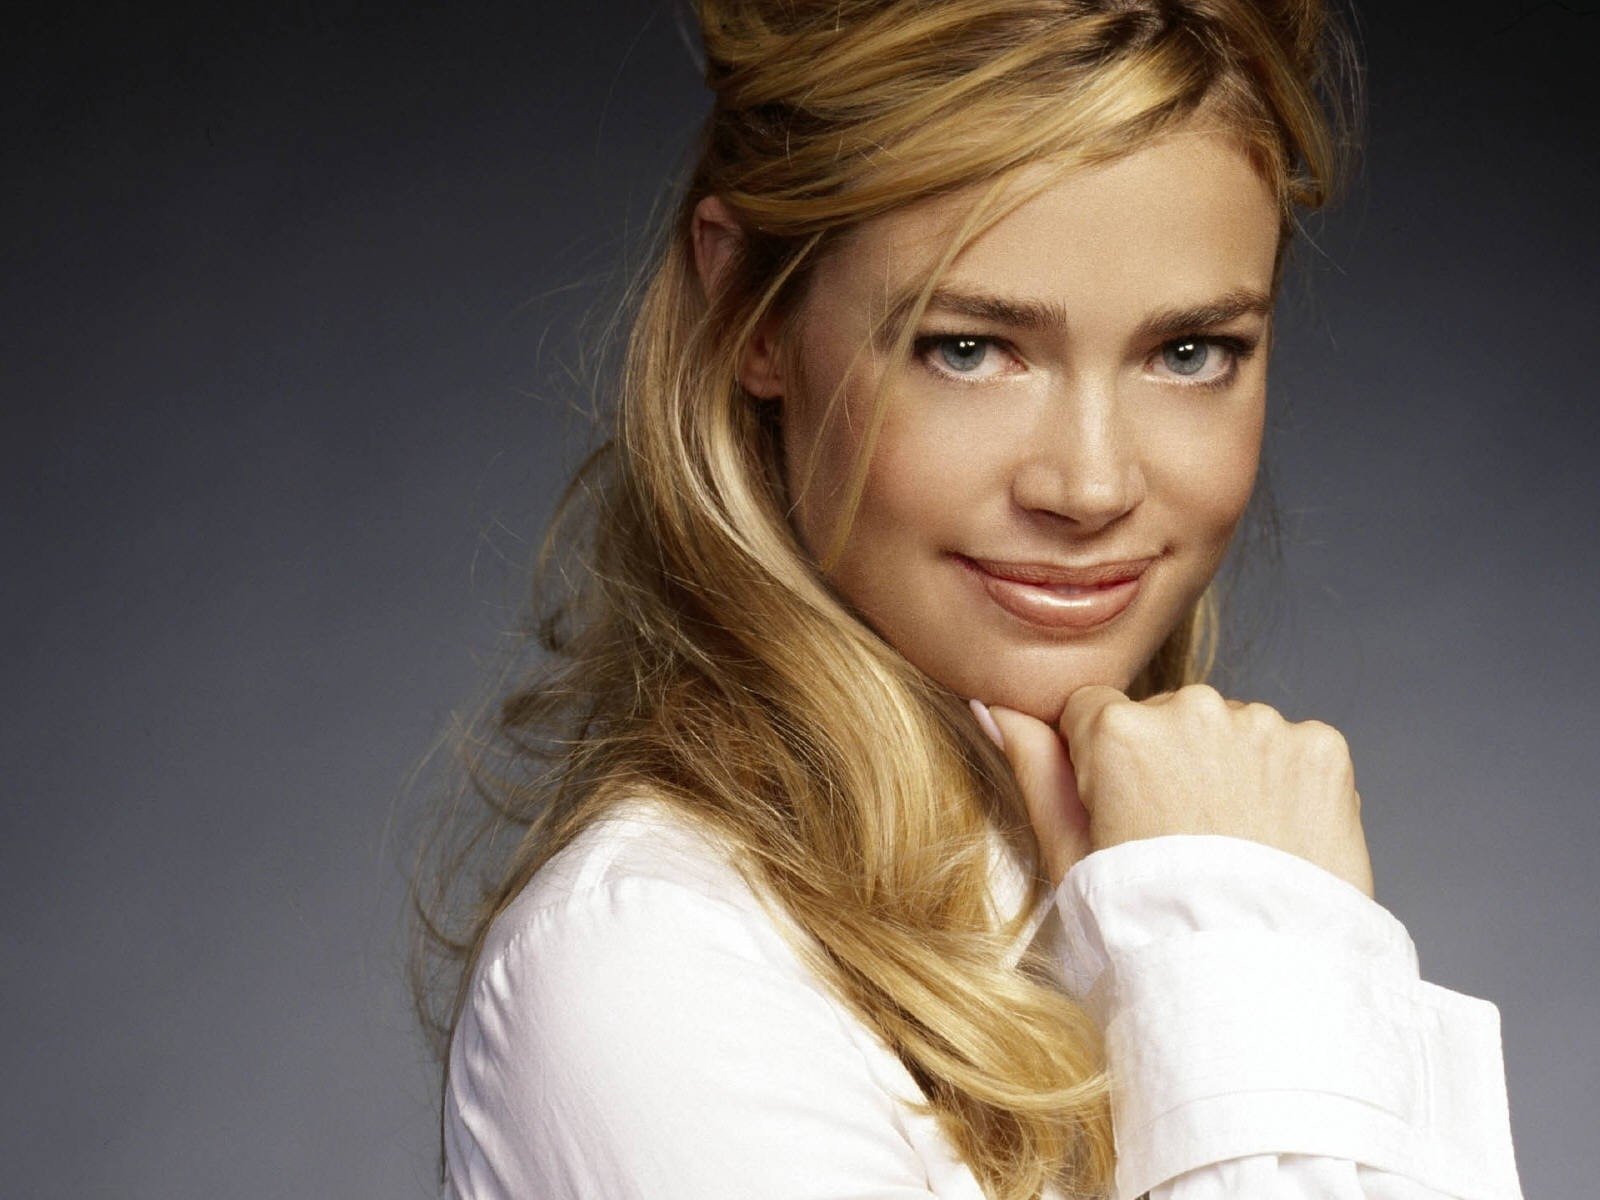 Wallpaper di Denise Richards - 32